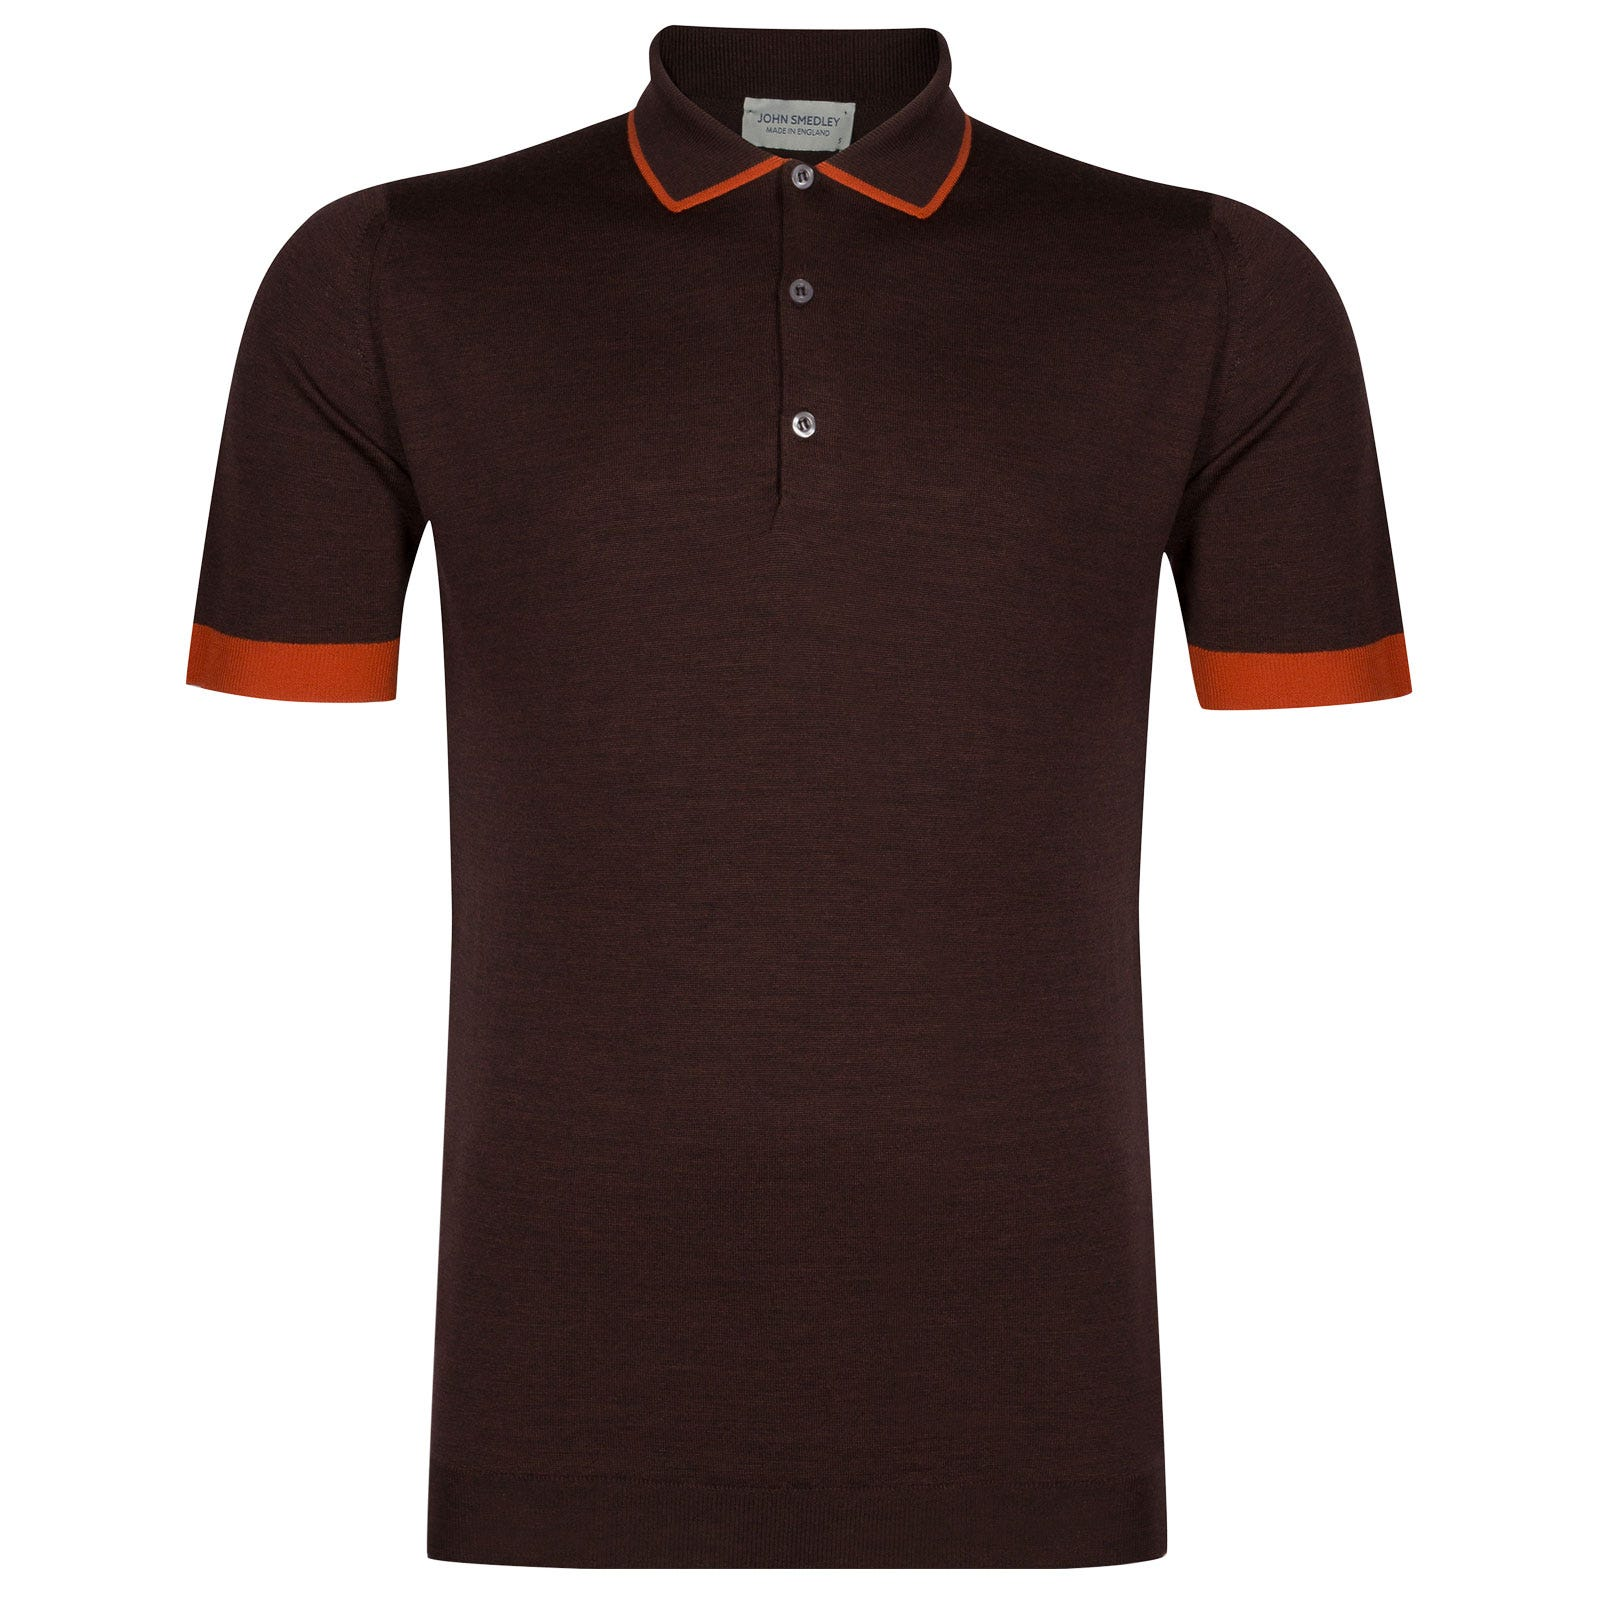 John Smedley nailsea Merino Wool Shirt in Chestnut/Flare Orange-M